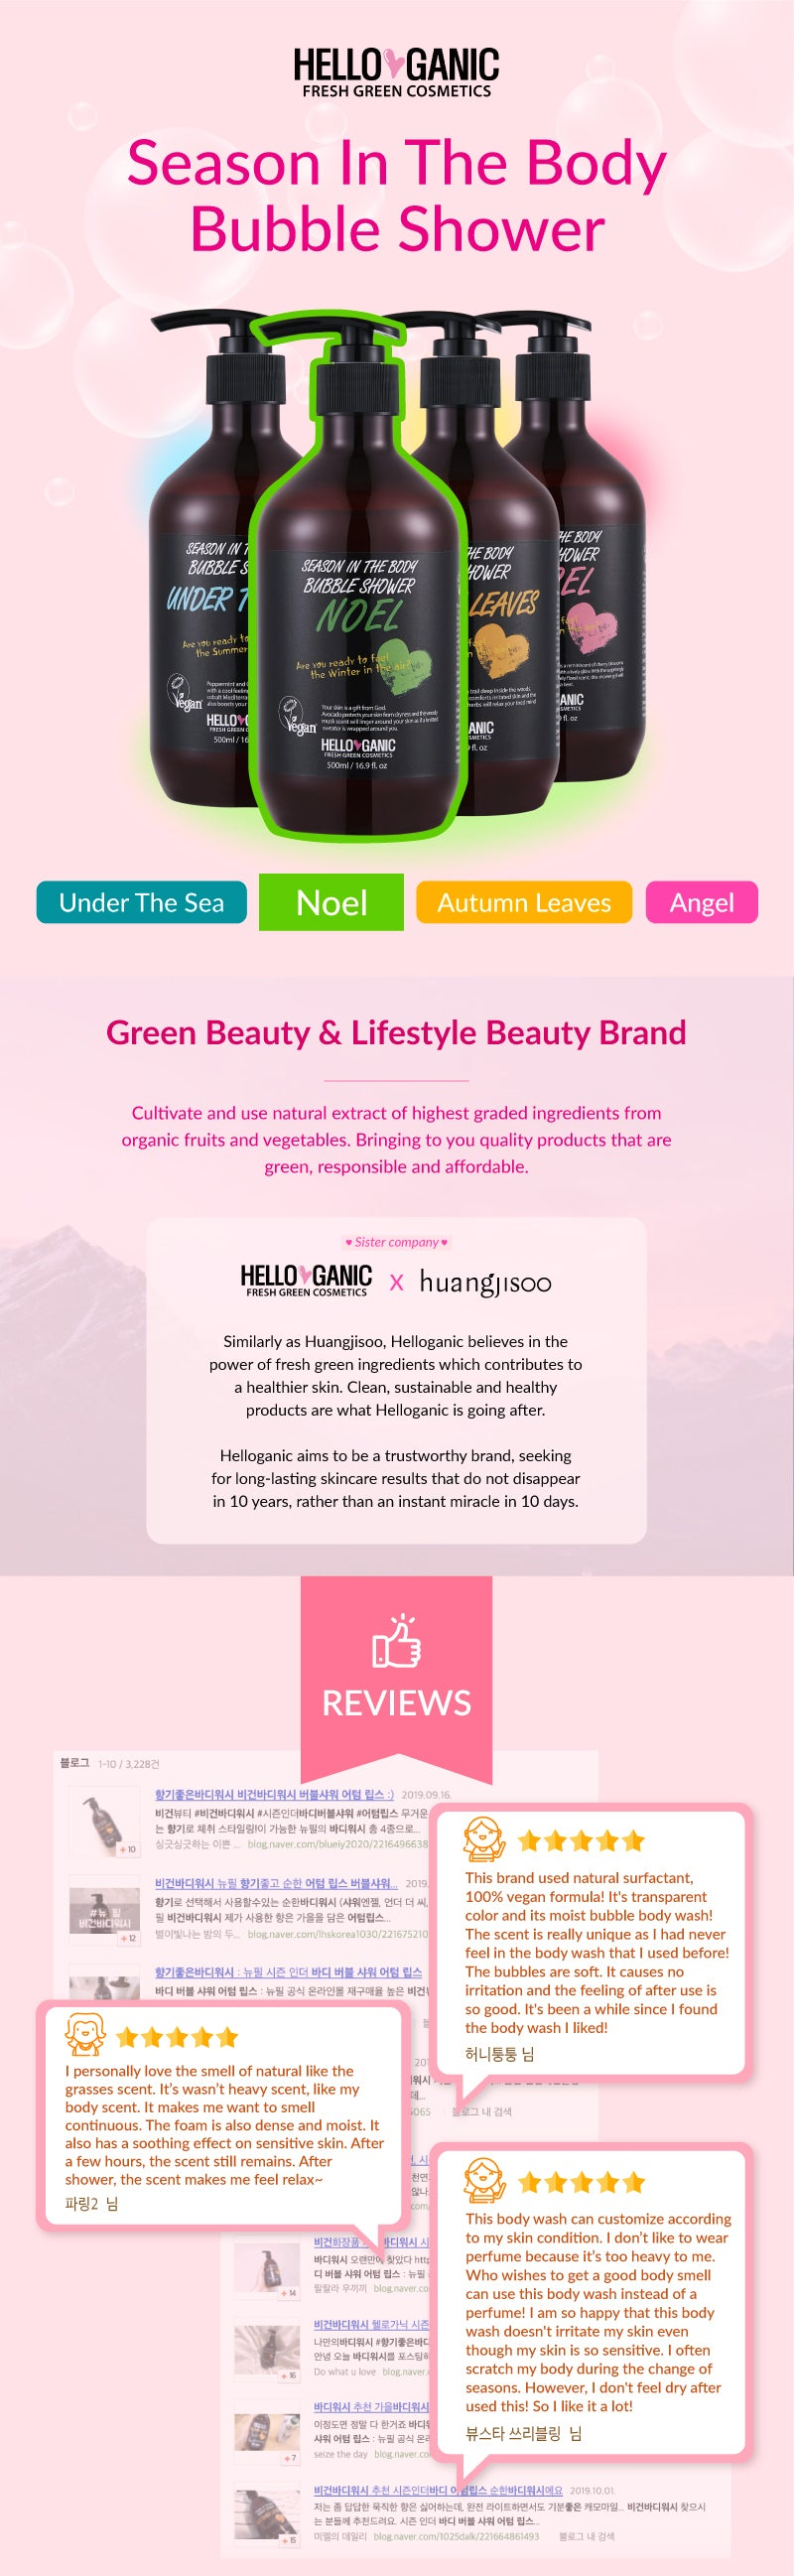 Helloganic Seasons In the Body Bubble Shower is here! With 4 different scents for 4 different looks! Did you know Helloganic is a sister company of Huangjisoo? Helloganic Aims to bring only he best ingredients from Natural and Organic Fruits and Vegetables! Check out the reviews here!